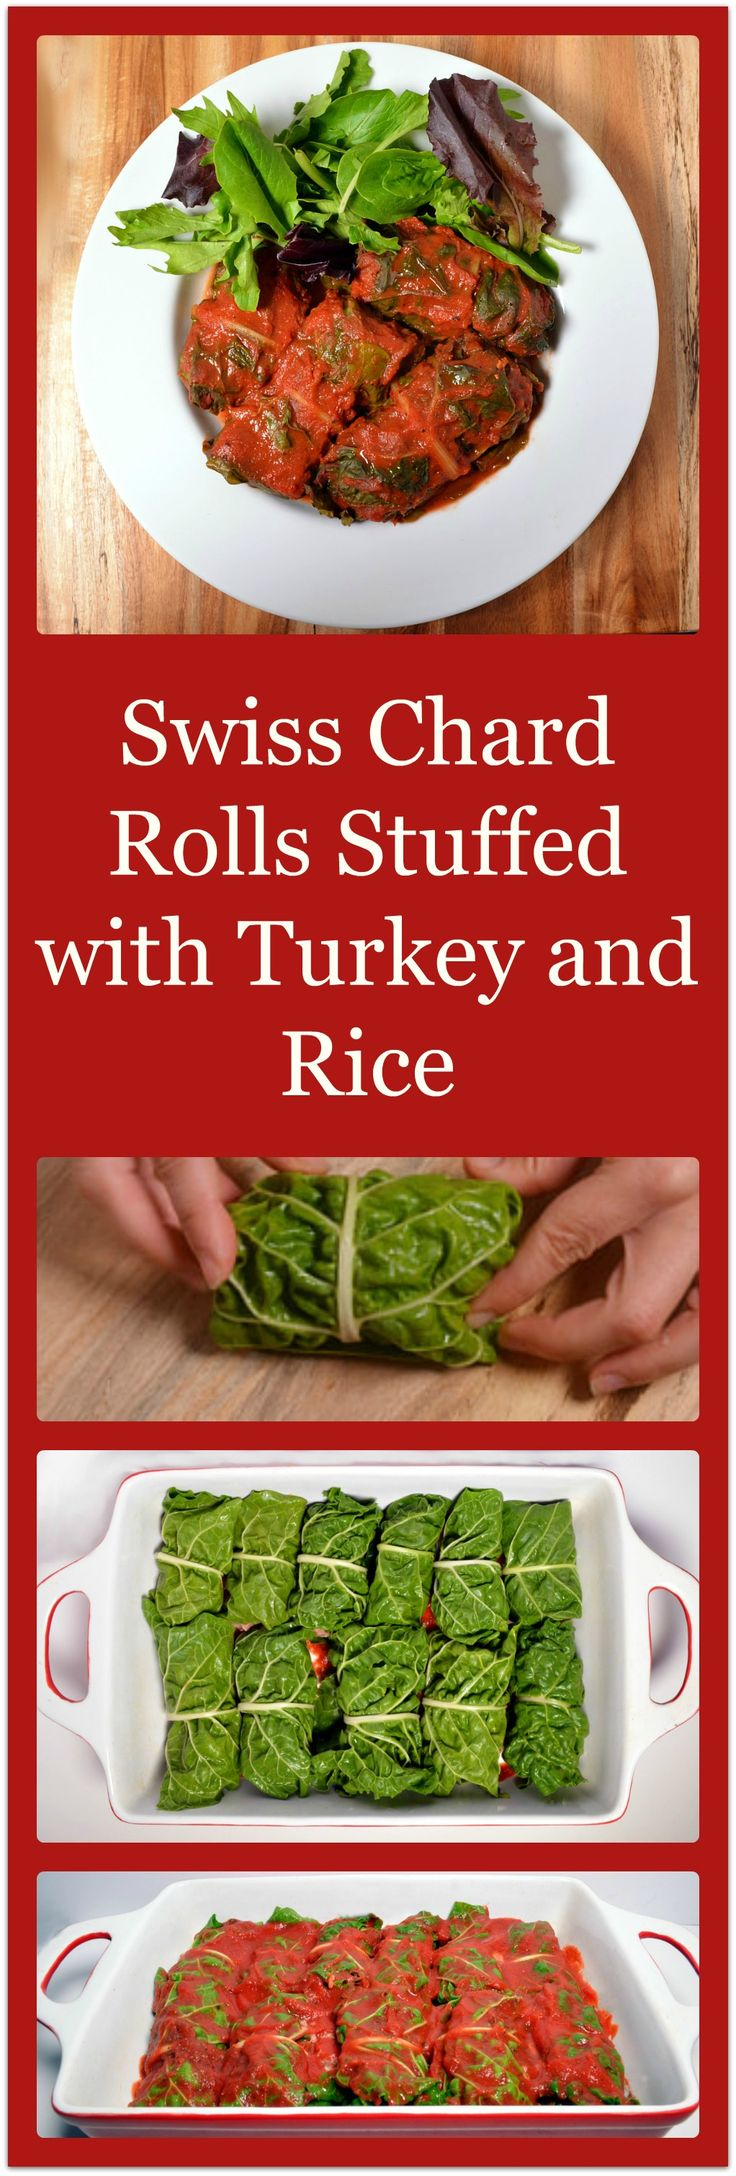 Swiss Chard Rolls Stuffed with Turkey and Rice - Gluten-free and Delicious! Great alternative to cabbage rolls. www.HealthyLifeRedesign.com (Chicken And Rice Gluten Free)